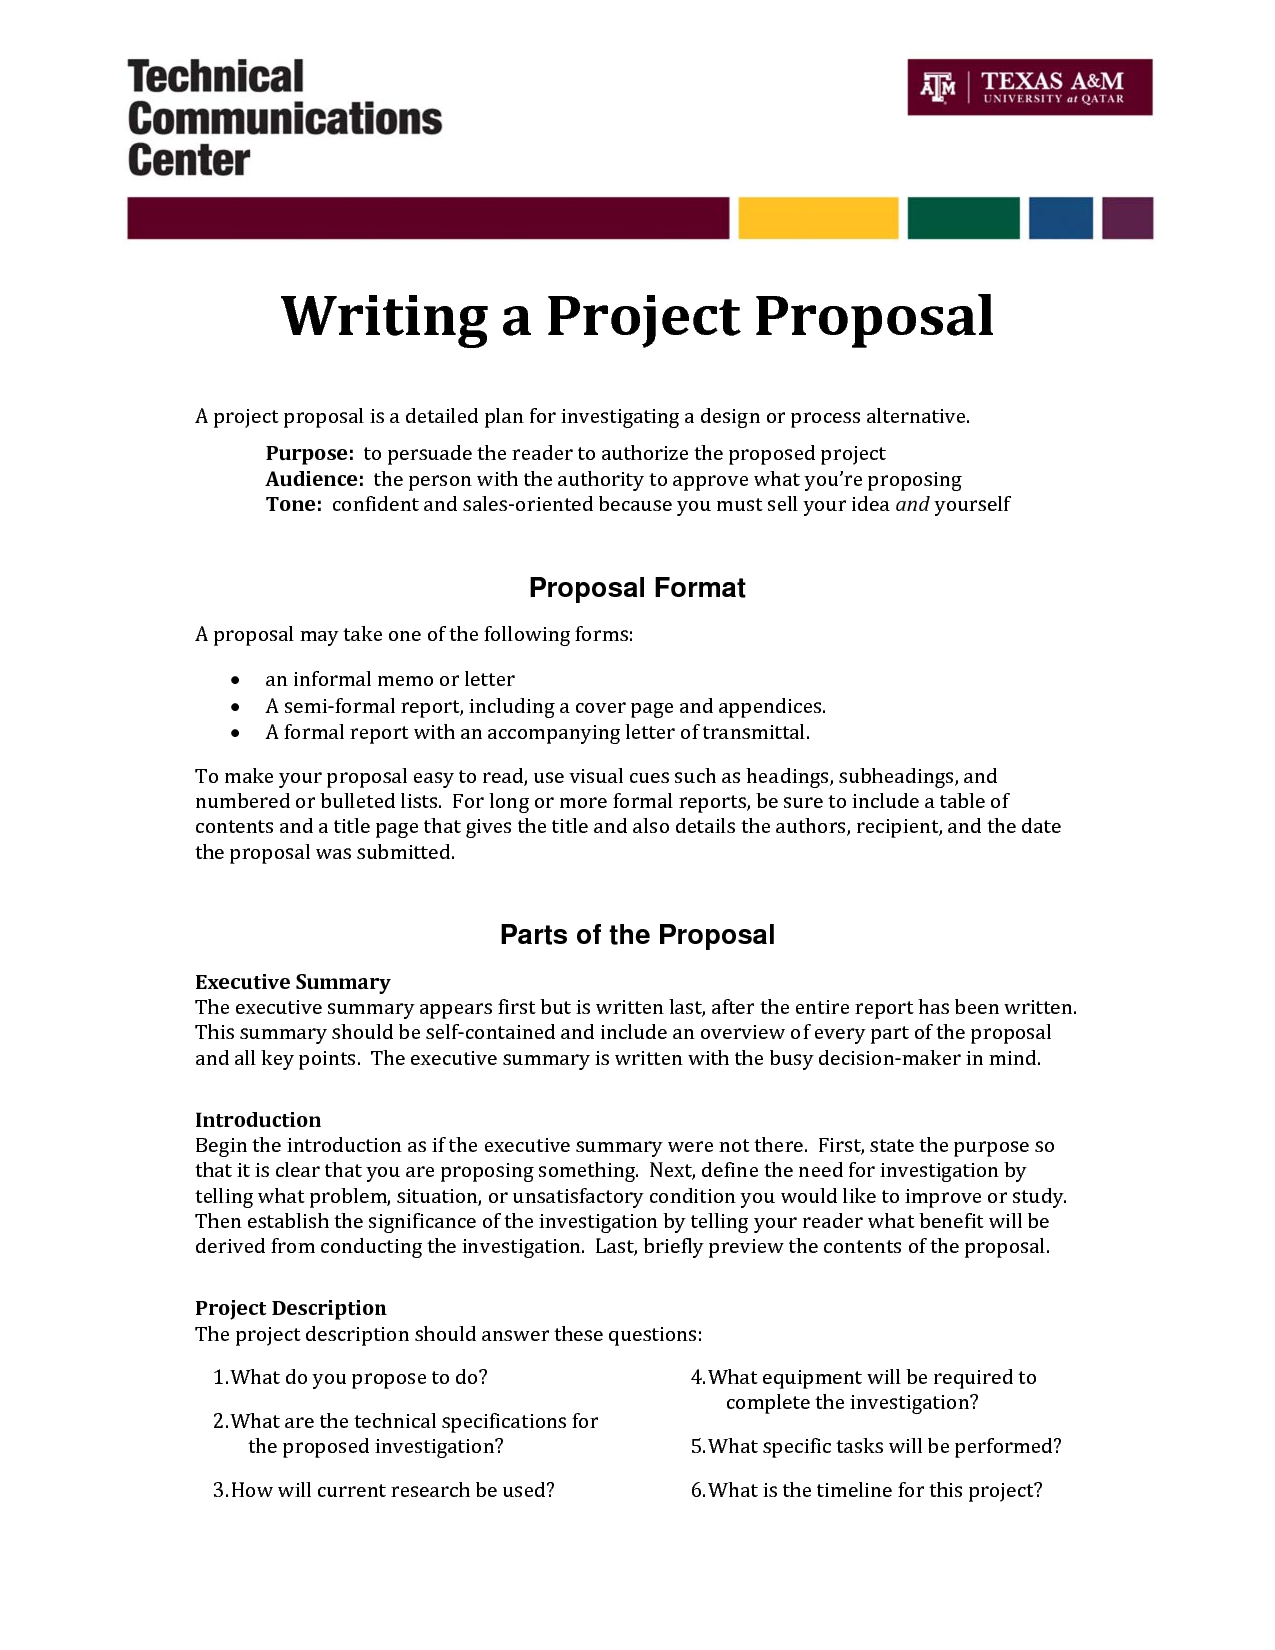 How To Write An Executive Summary For Your Proposal  Proposal